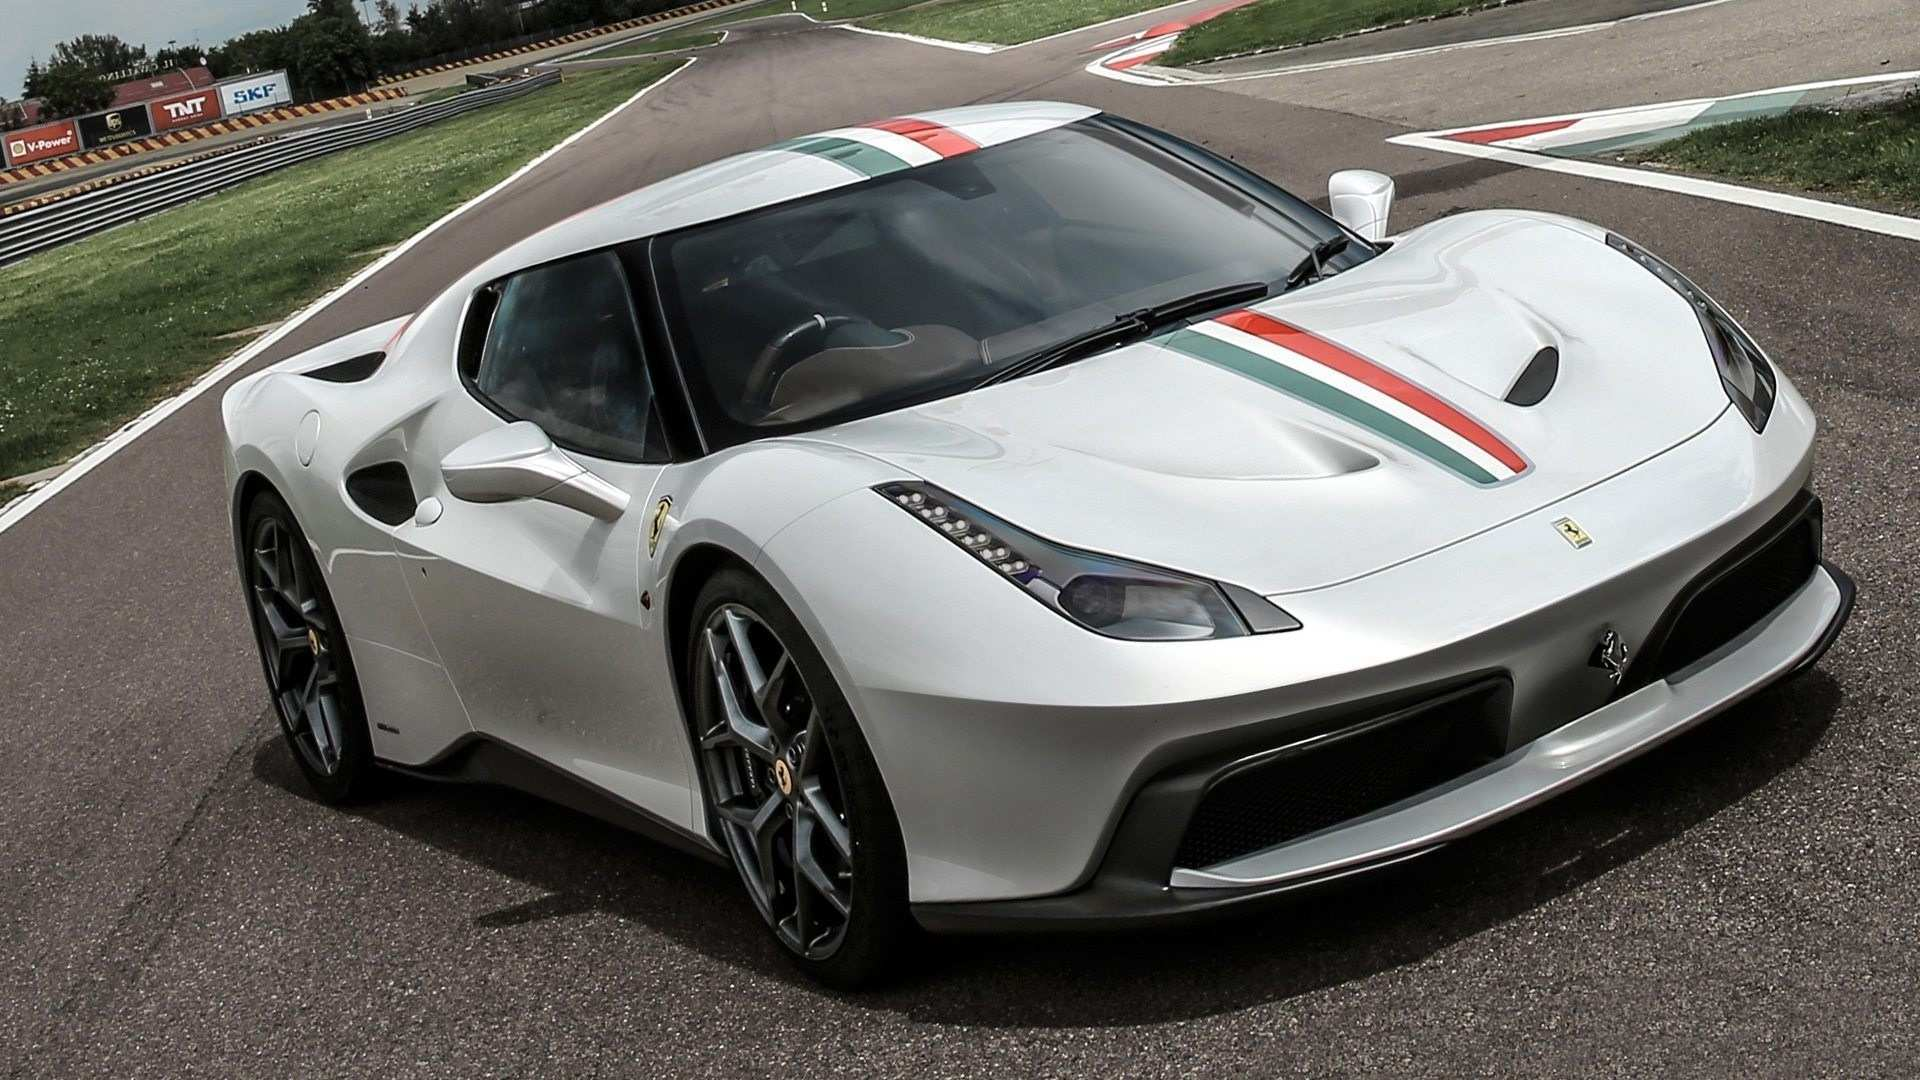 77 All New 2019 Ferrari 458 Photos by 2019 Ferrari 458